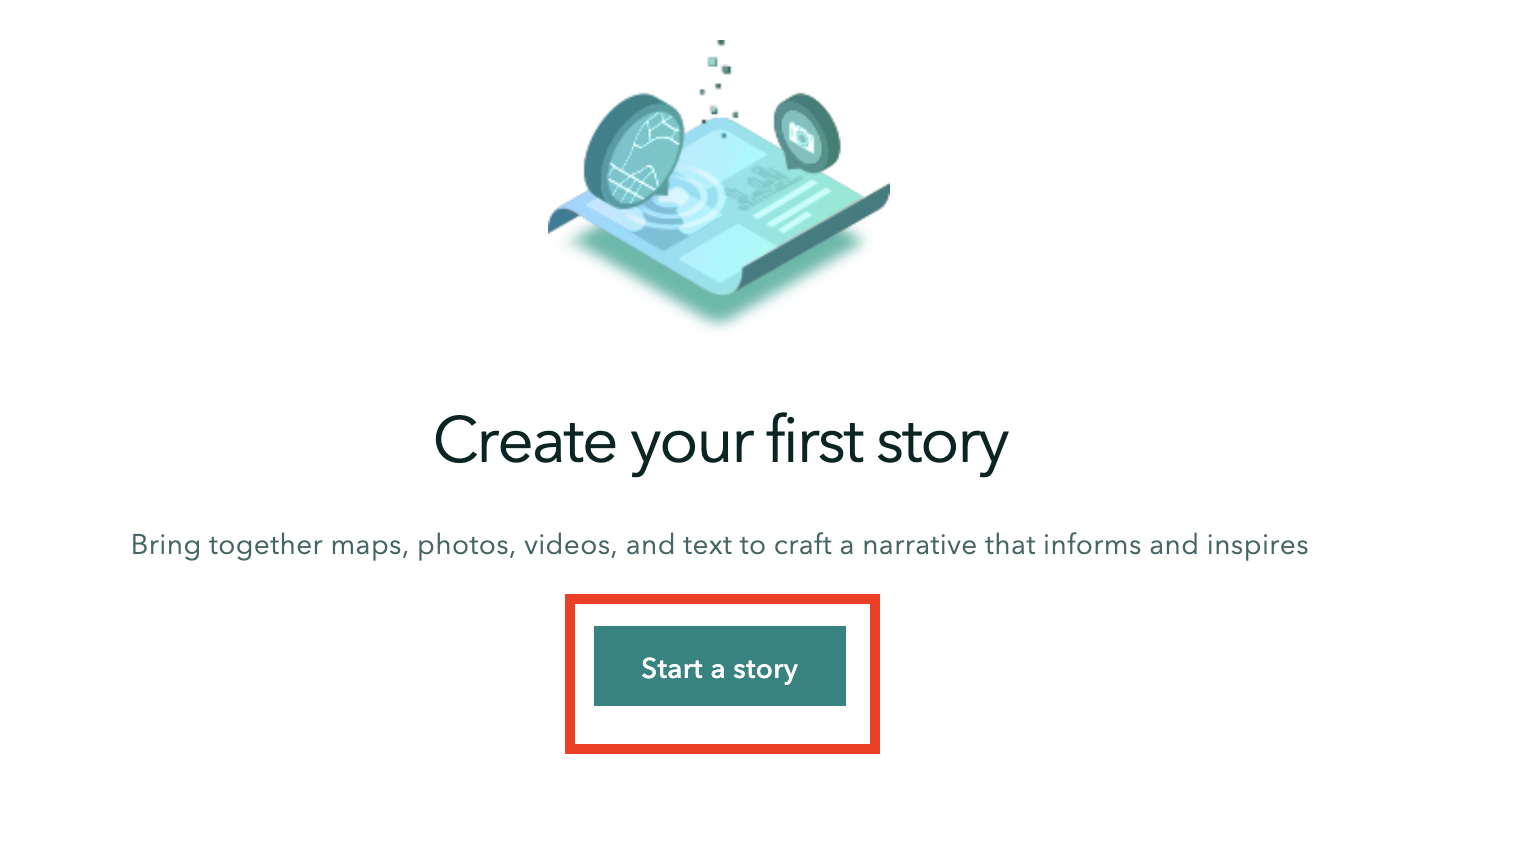 Start your story icon